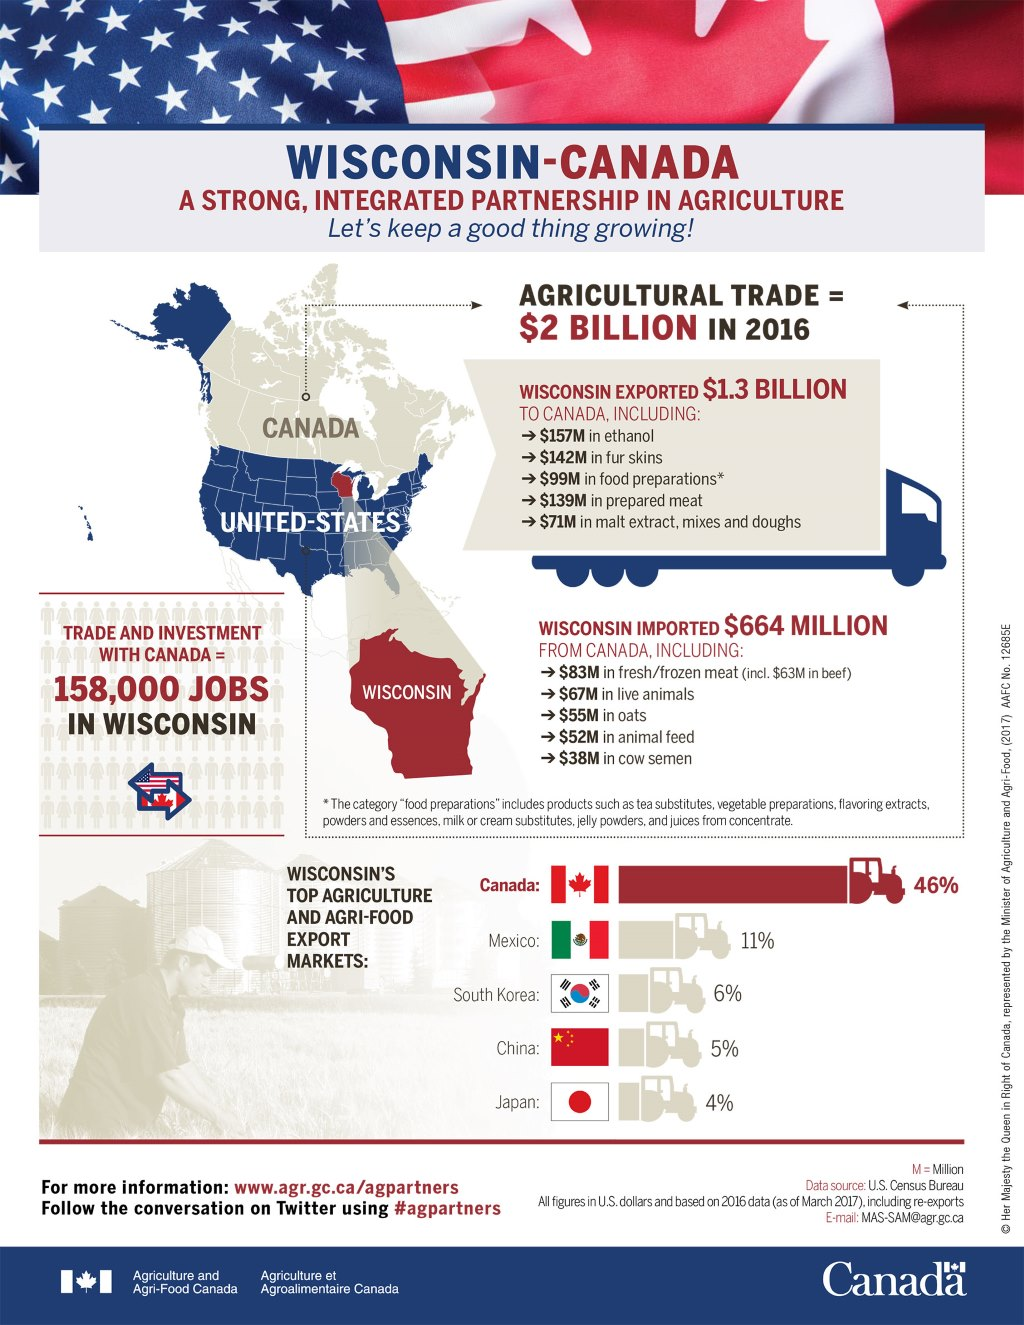 An extensive agricultural trade is just one facet of Wisconsin's multi-billion-dollar import-export relationship with Canada. Photo from Agriculture and Agri-Food Canada.